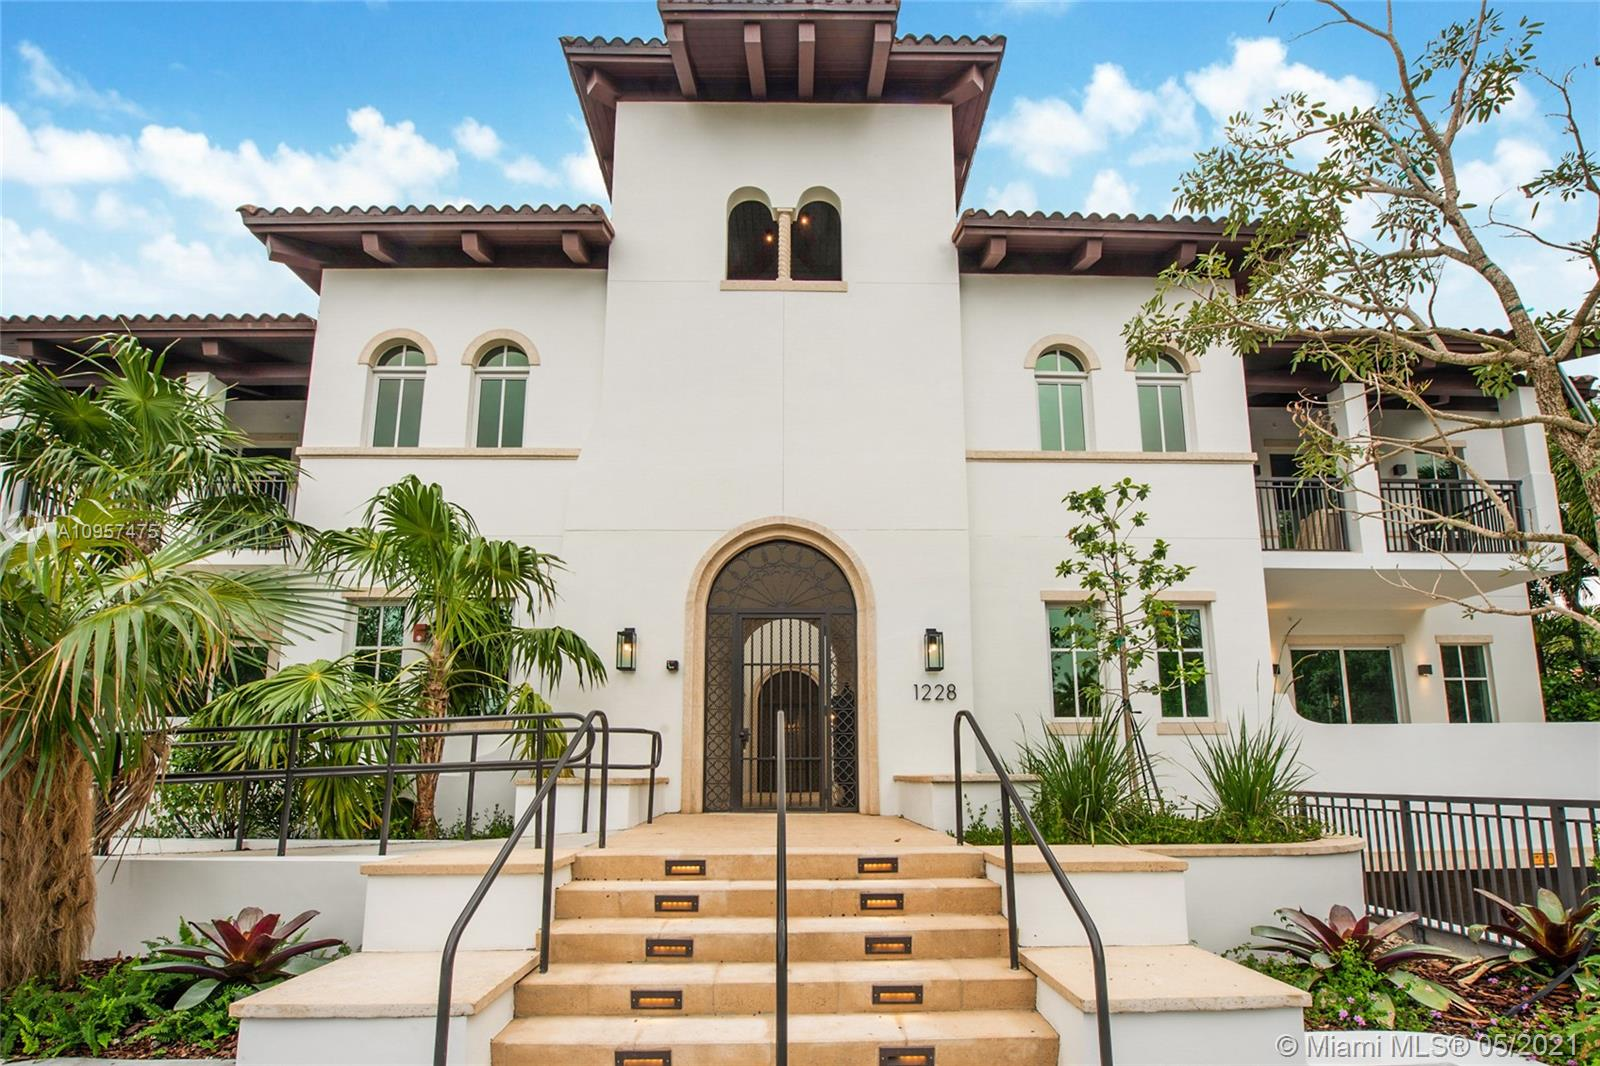 Be one of the fortunate few to live next to the iconic Biltmore Hotel. Enjoy Landmark-resort living in this boutique condo, 11 units on the golf course, the only condo of its kind in an established single-family neighborhood. This flat offers views of Anastasia and lovely estate homes , private elevator, 3 covered parking & covered terrace w/summer kitchen. Timeless beauty; the classic architecture, in keeping with Merrick's vision, is complemented by contemporary interiors, Italian Veneta Cucina kitchen, Wolf/Sub Zero appliances. Enjoy the residents' spa and courtyard, deck & tall privacy hedge.LA + TOTAL incl. covered Summer kitchen terrace.